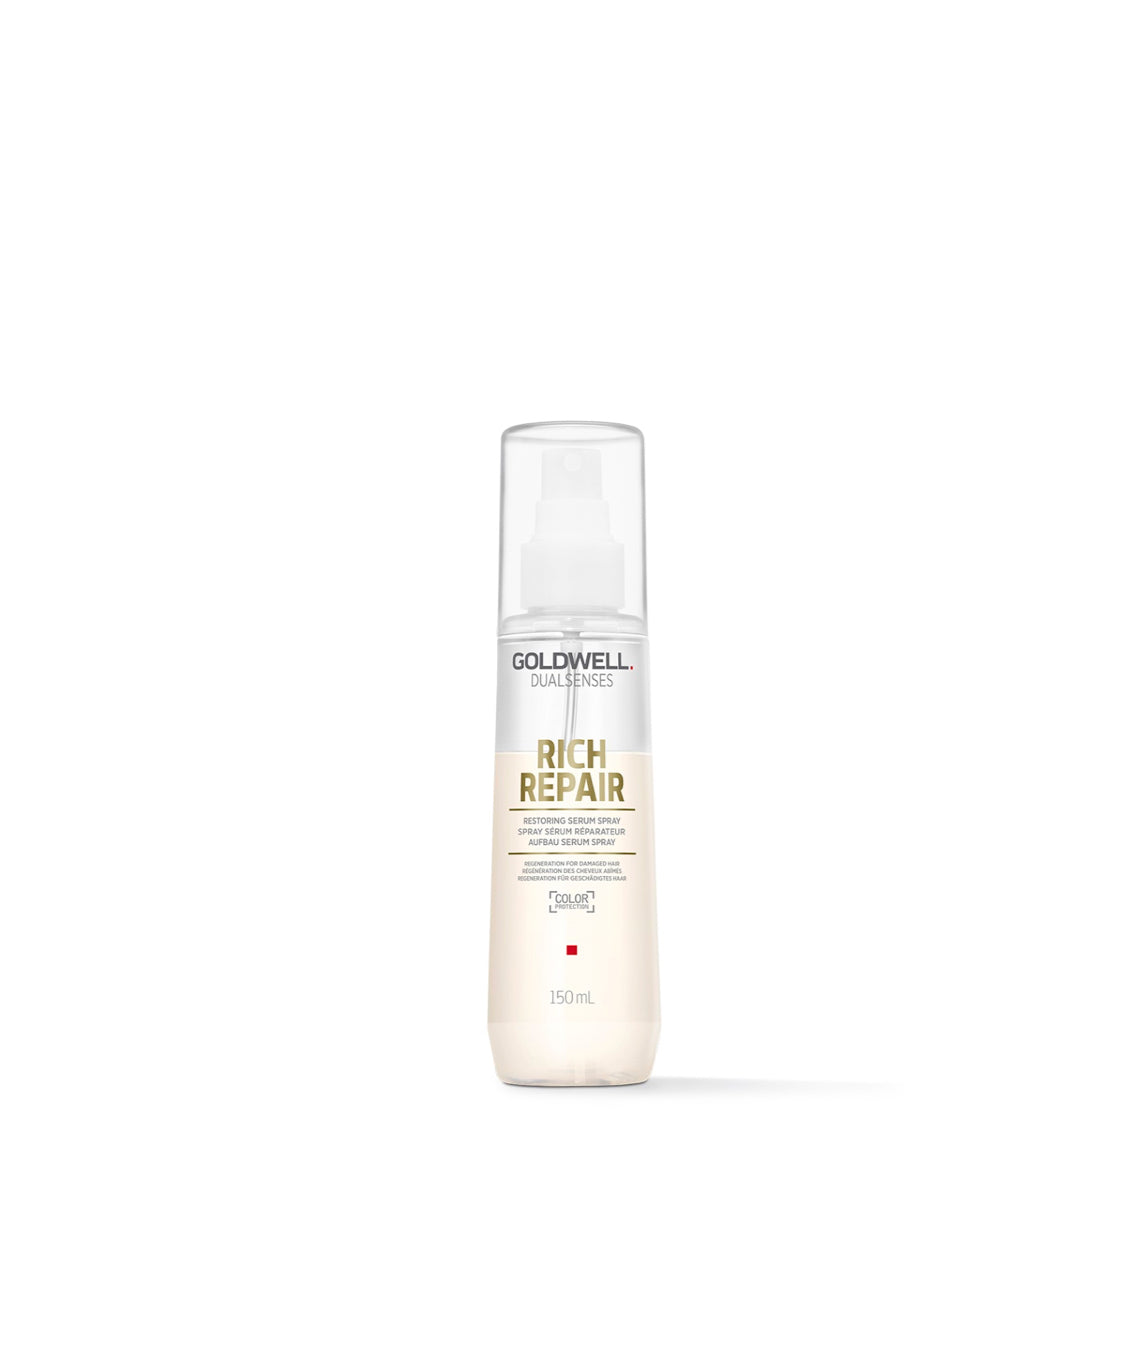 Dualsenses Rich Repair Restoring Serum Spray   (150 ml)